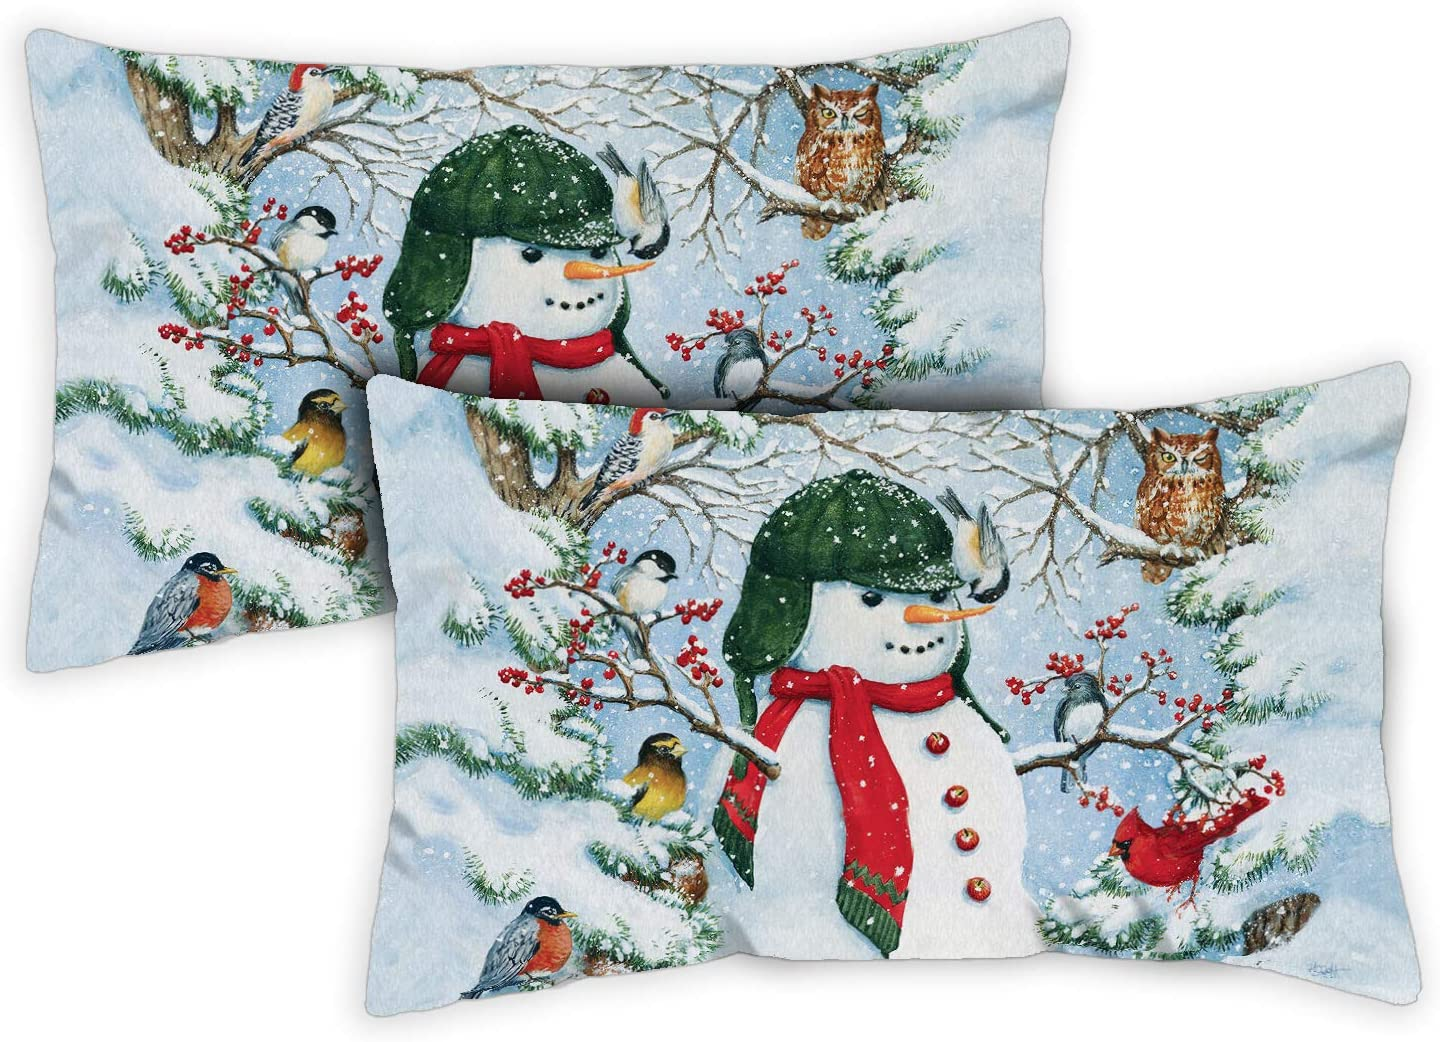 Toland Home Garden Woodland Snowman 12 x 19 Inch Decorative Indoor Pillow Case Only (2-Pack)